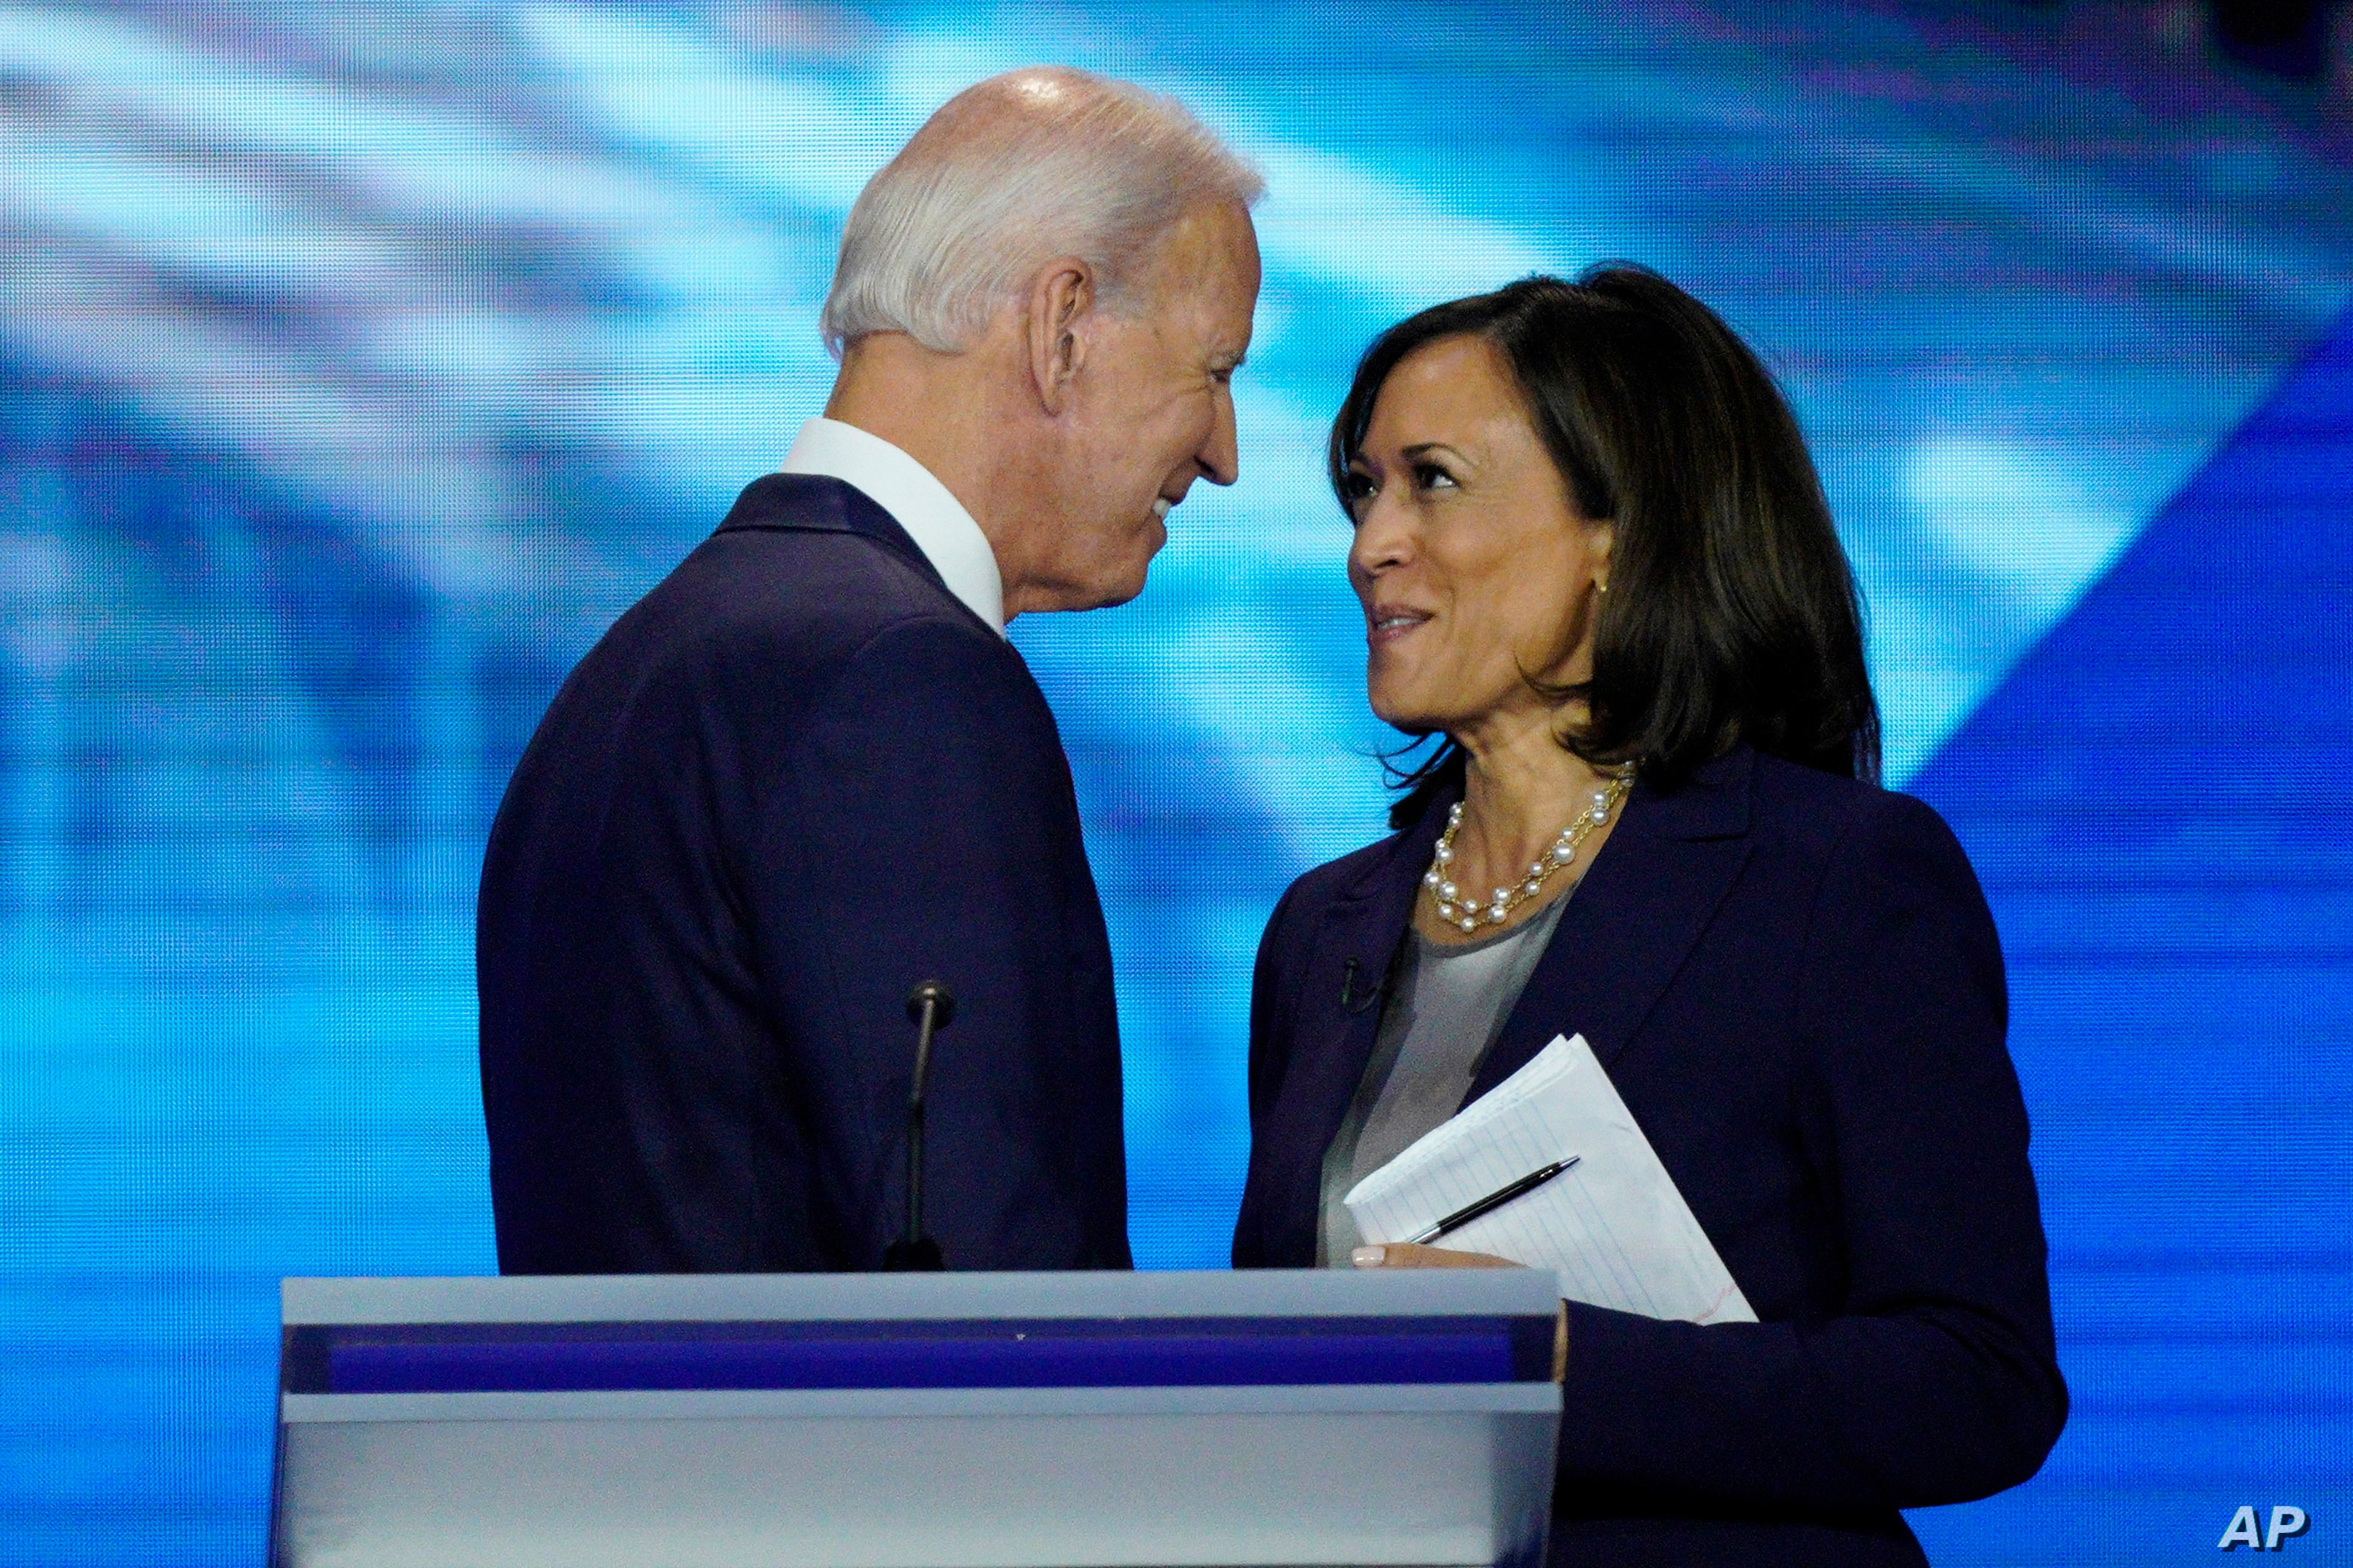 Biden Harris To Make First Public Appearance Together As Running Mates Voice Of America English